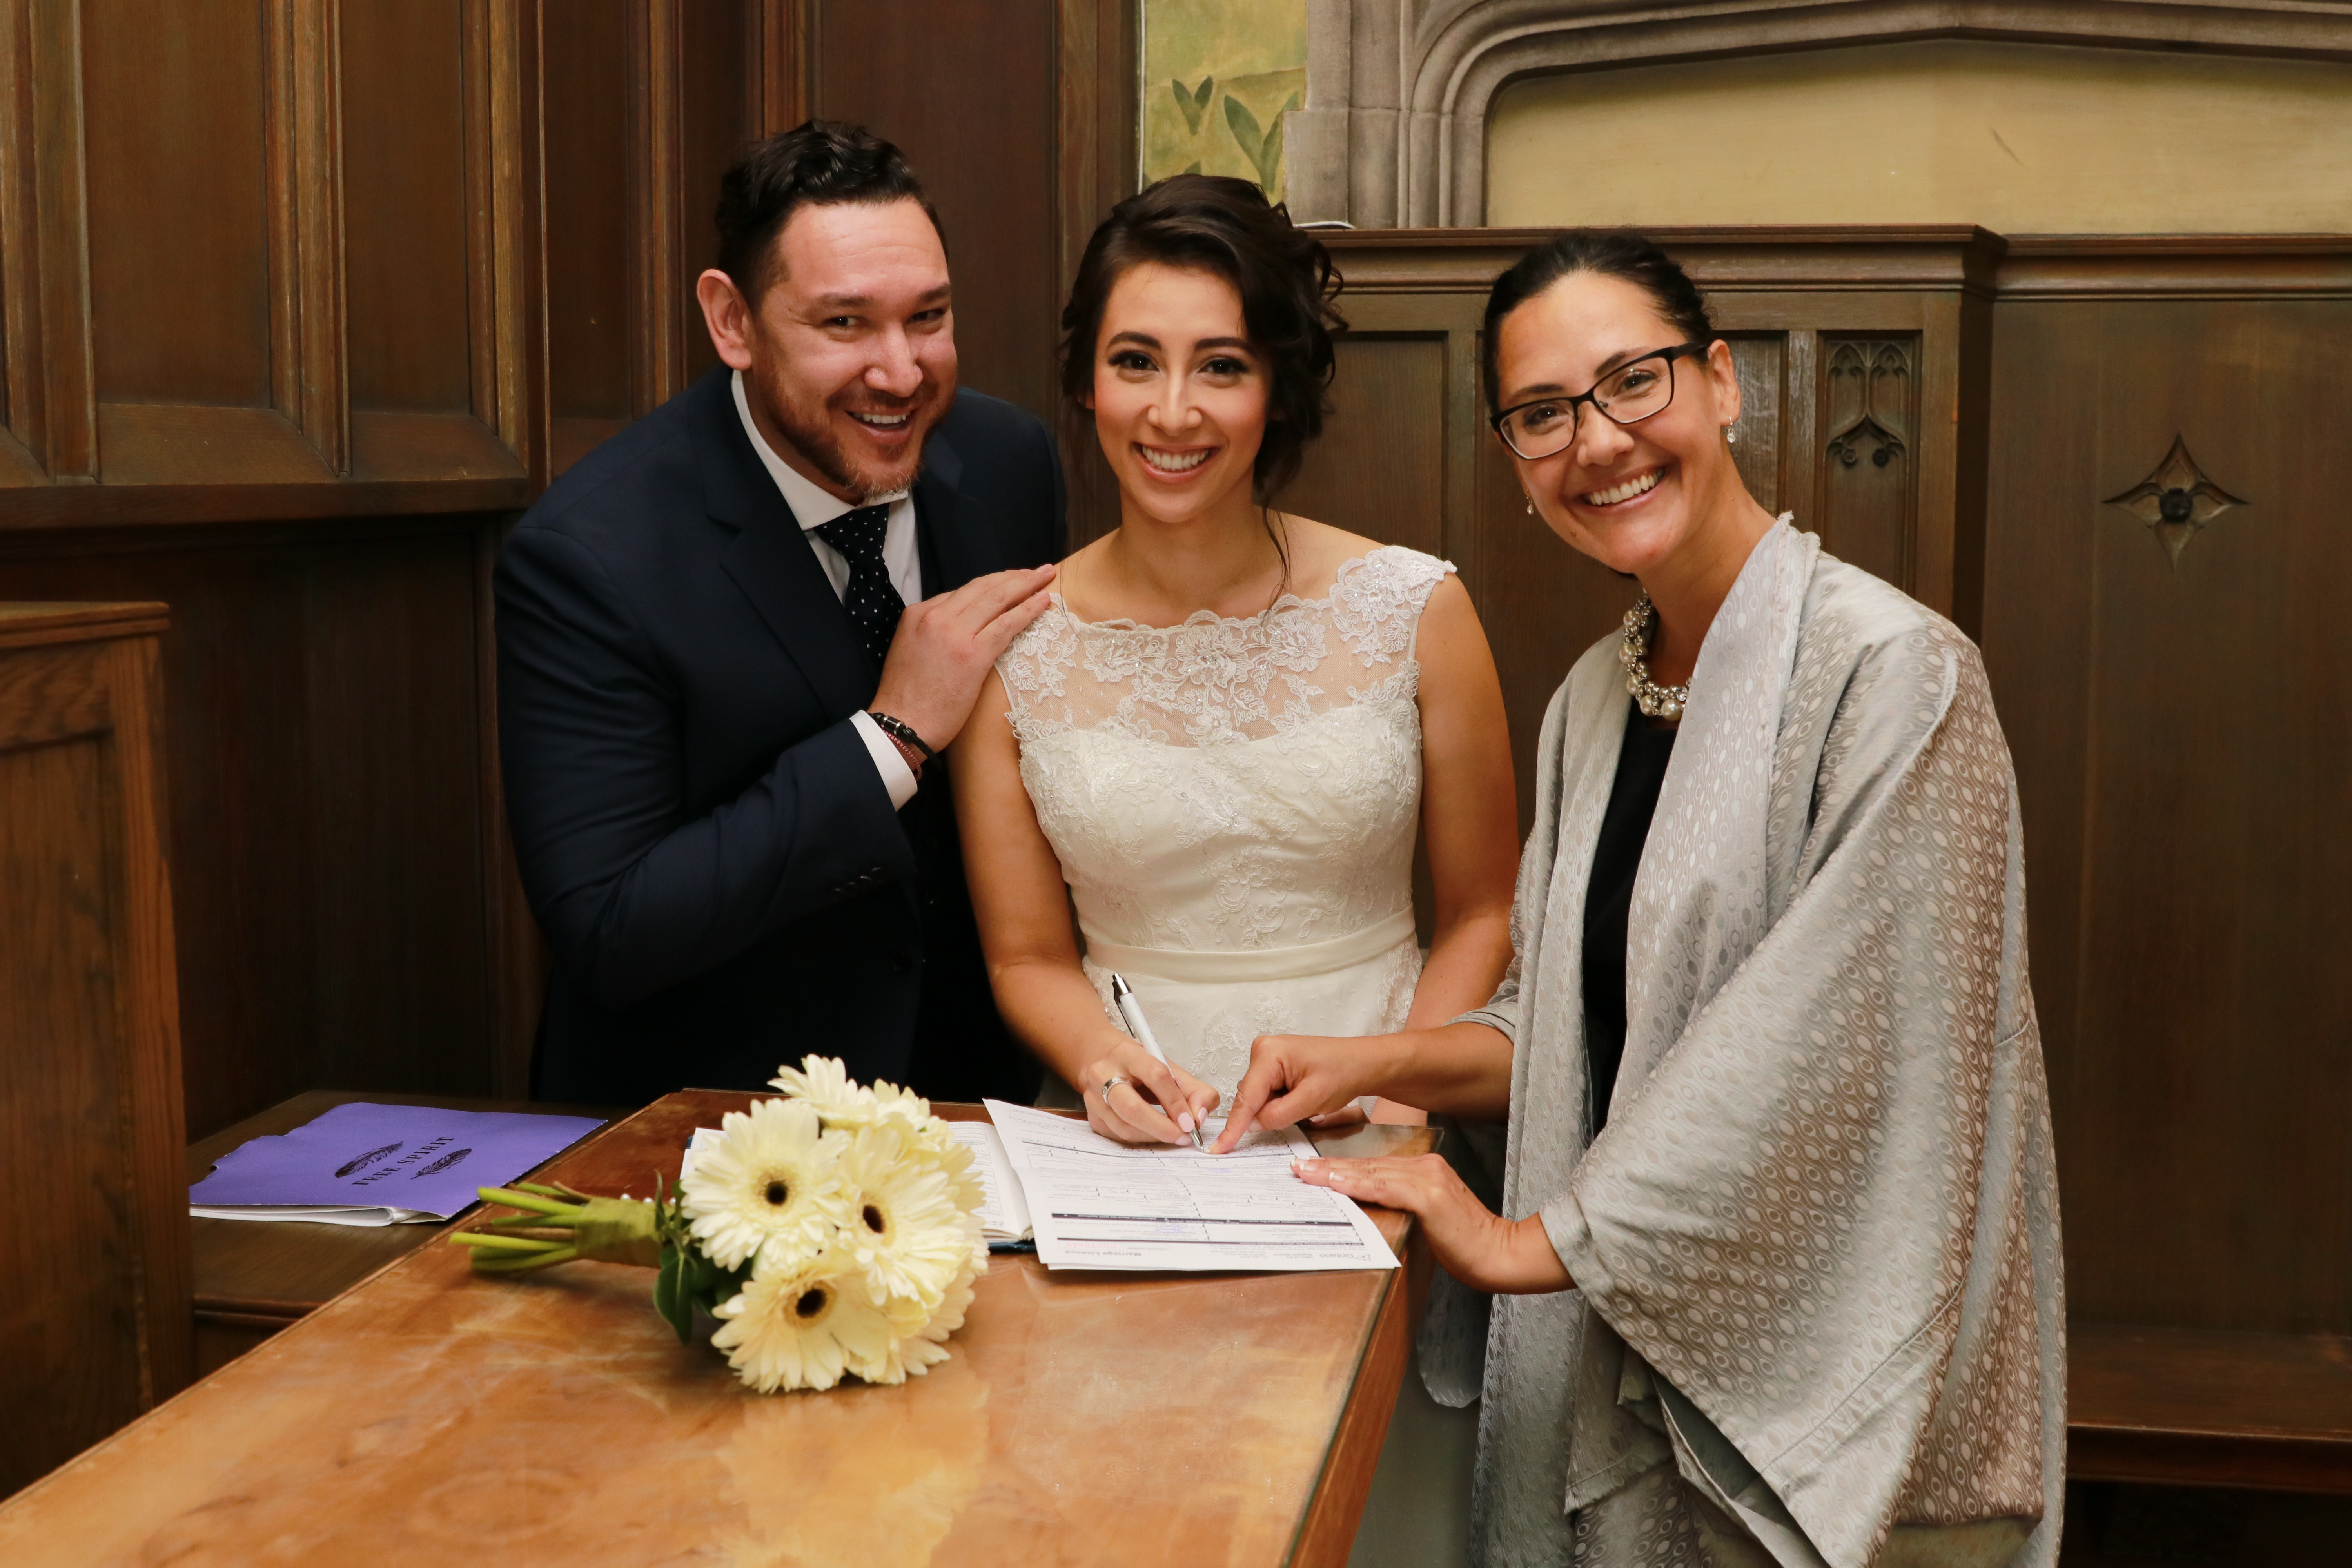 Hart House Wedding Officiant